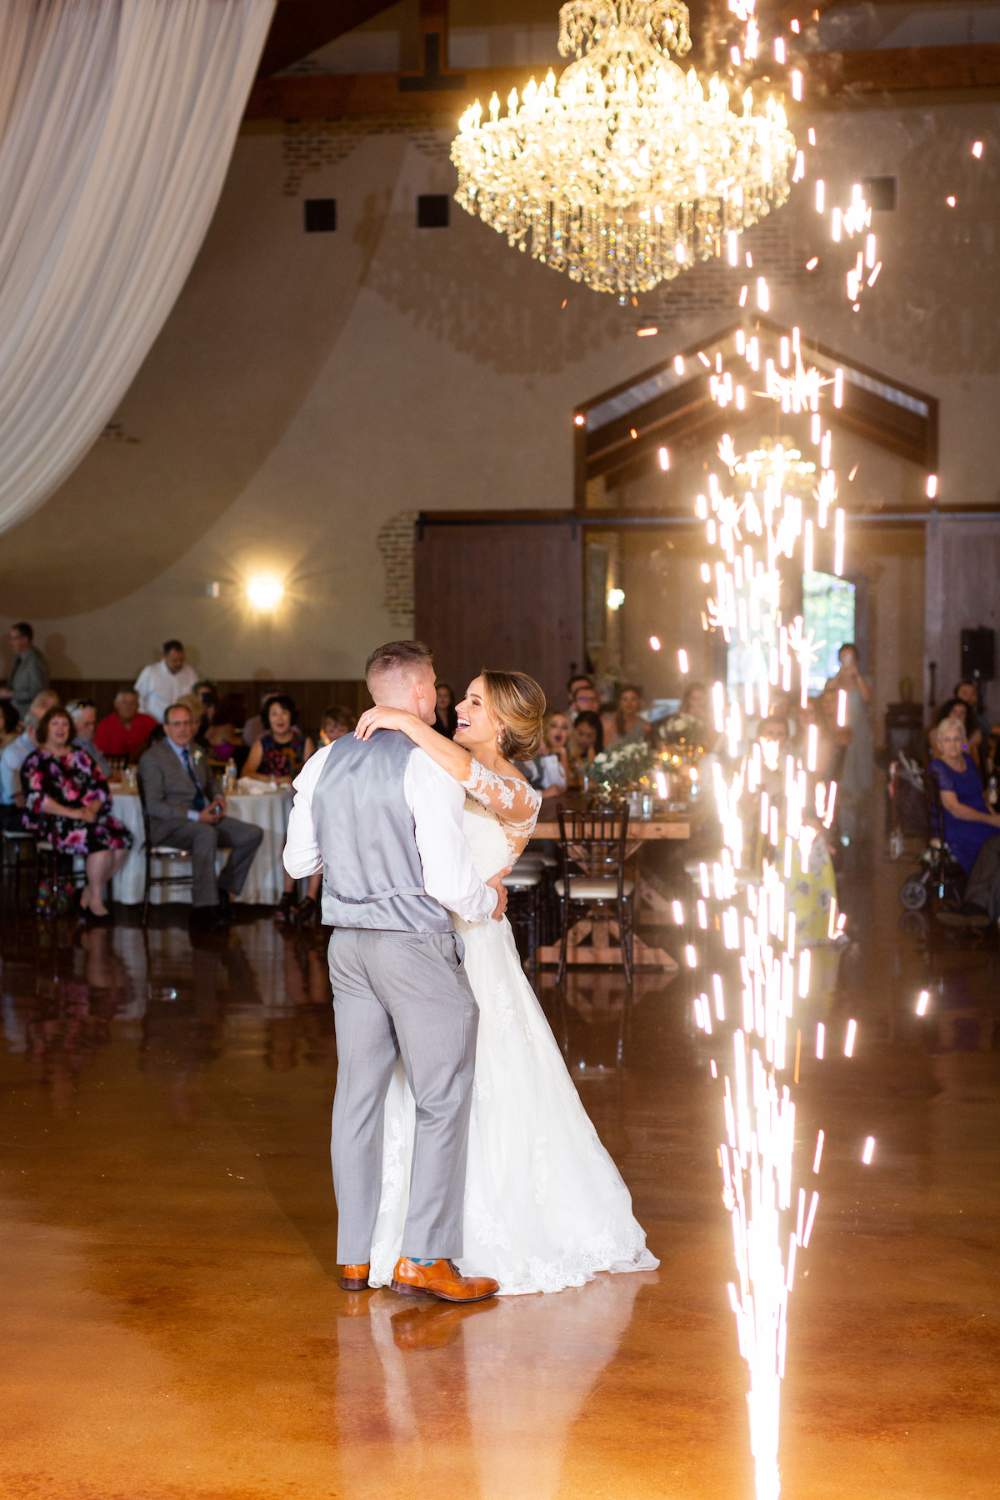 must do!!! cold spark indoor fireworks for your first